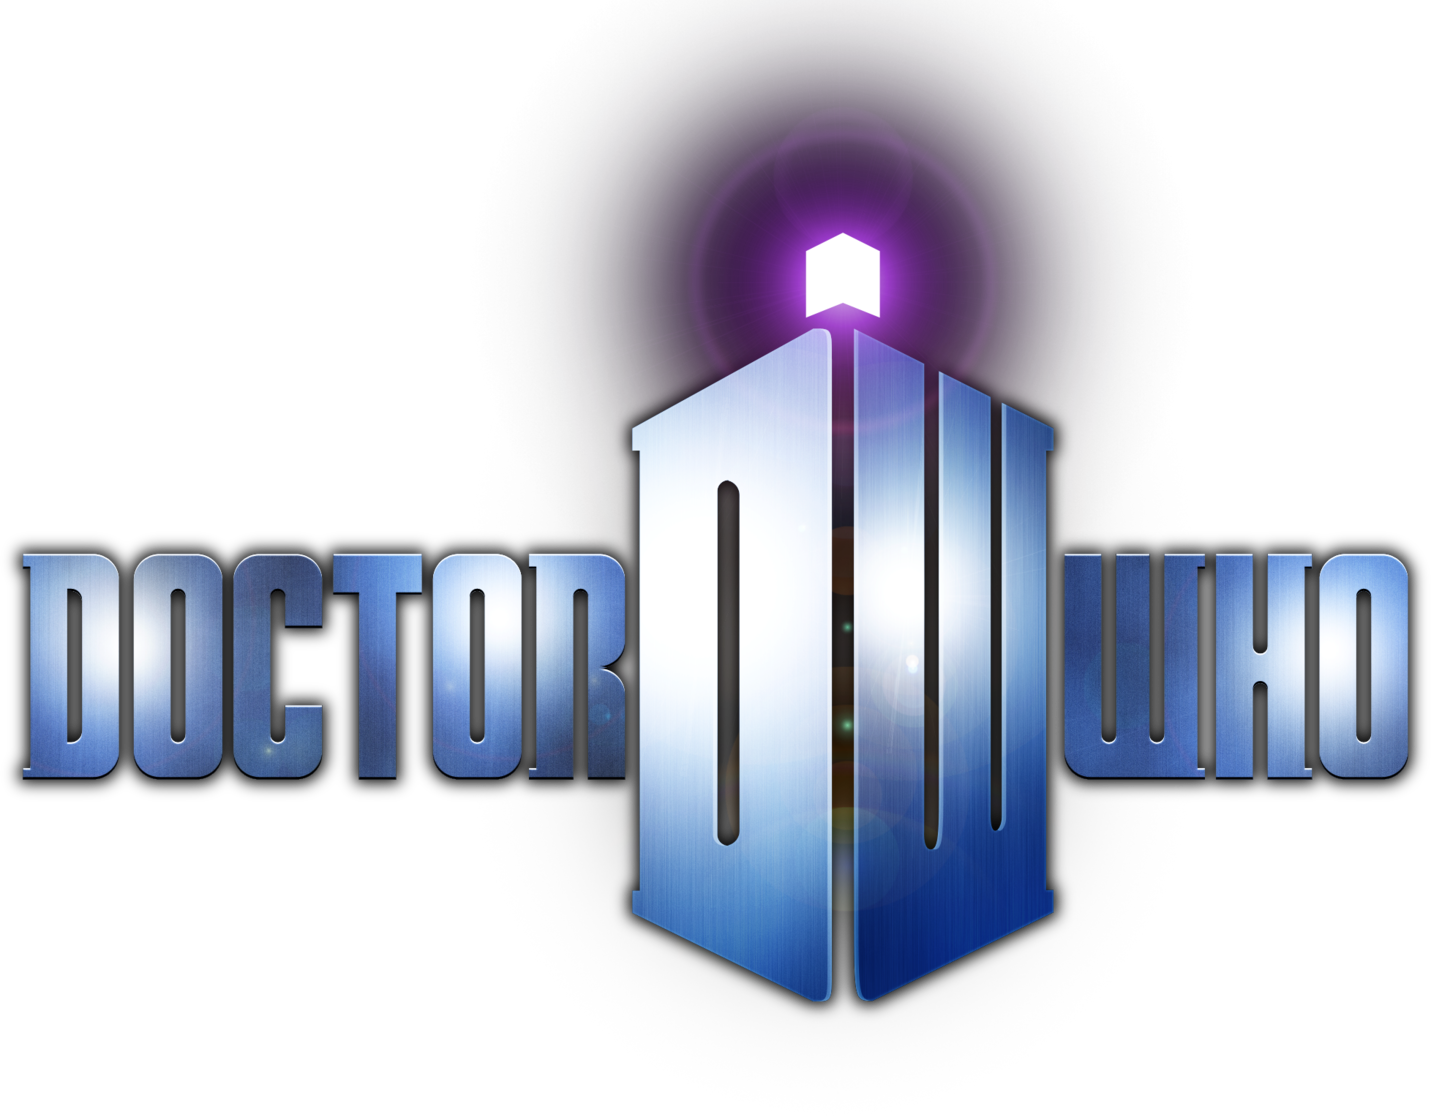 tardis clip art all doctor who logos free cliparts that you can download to you  [ 1431 x 1117 Pixel ]